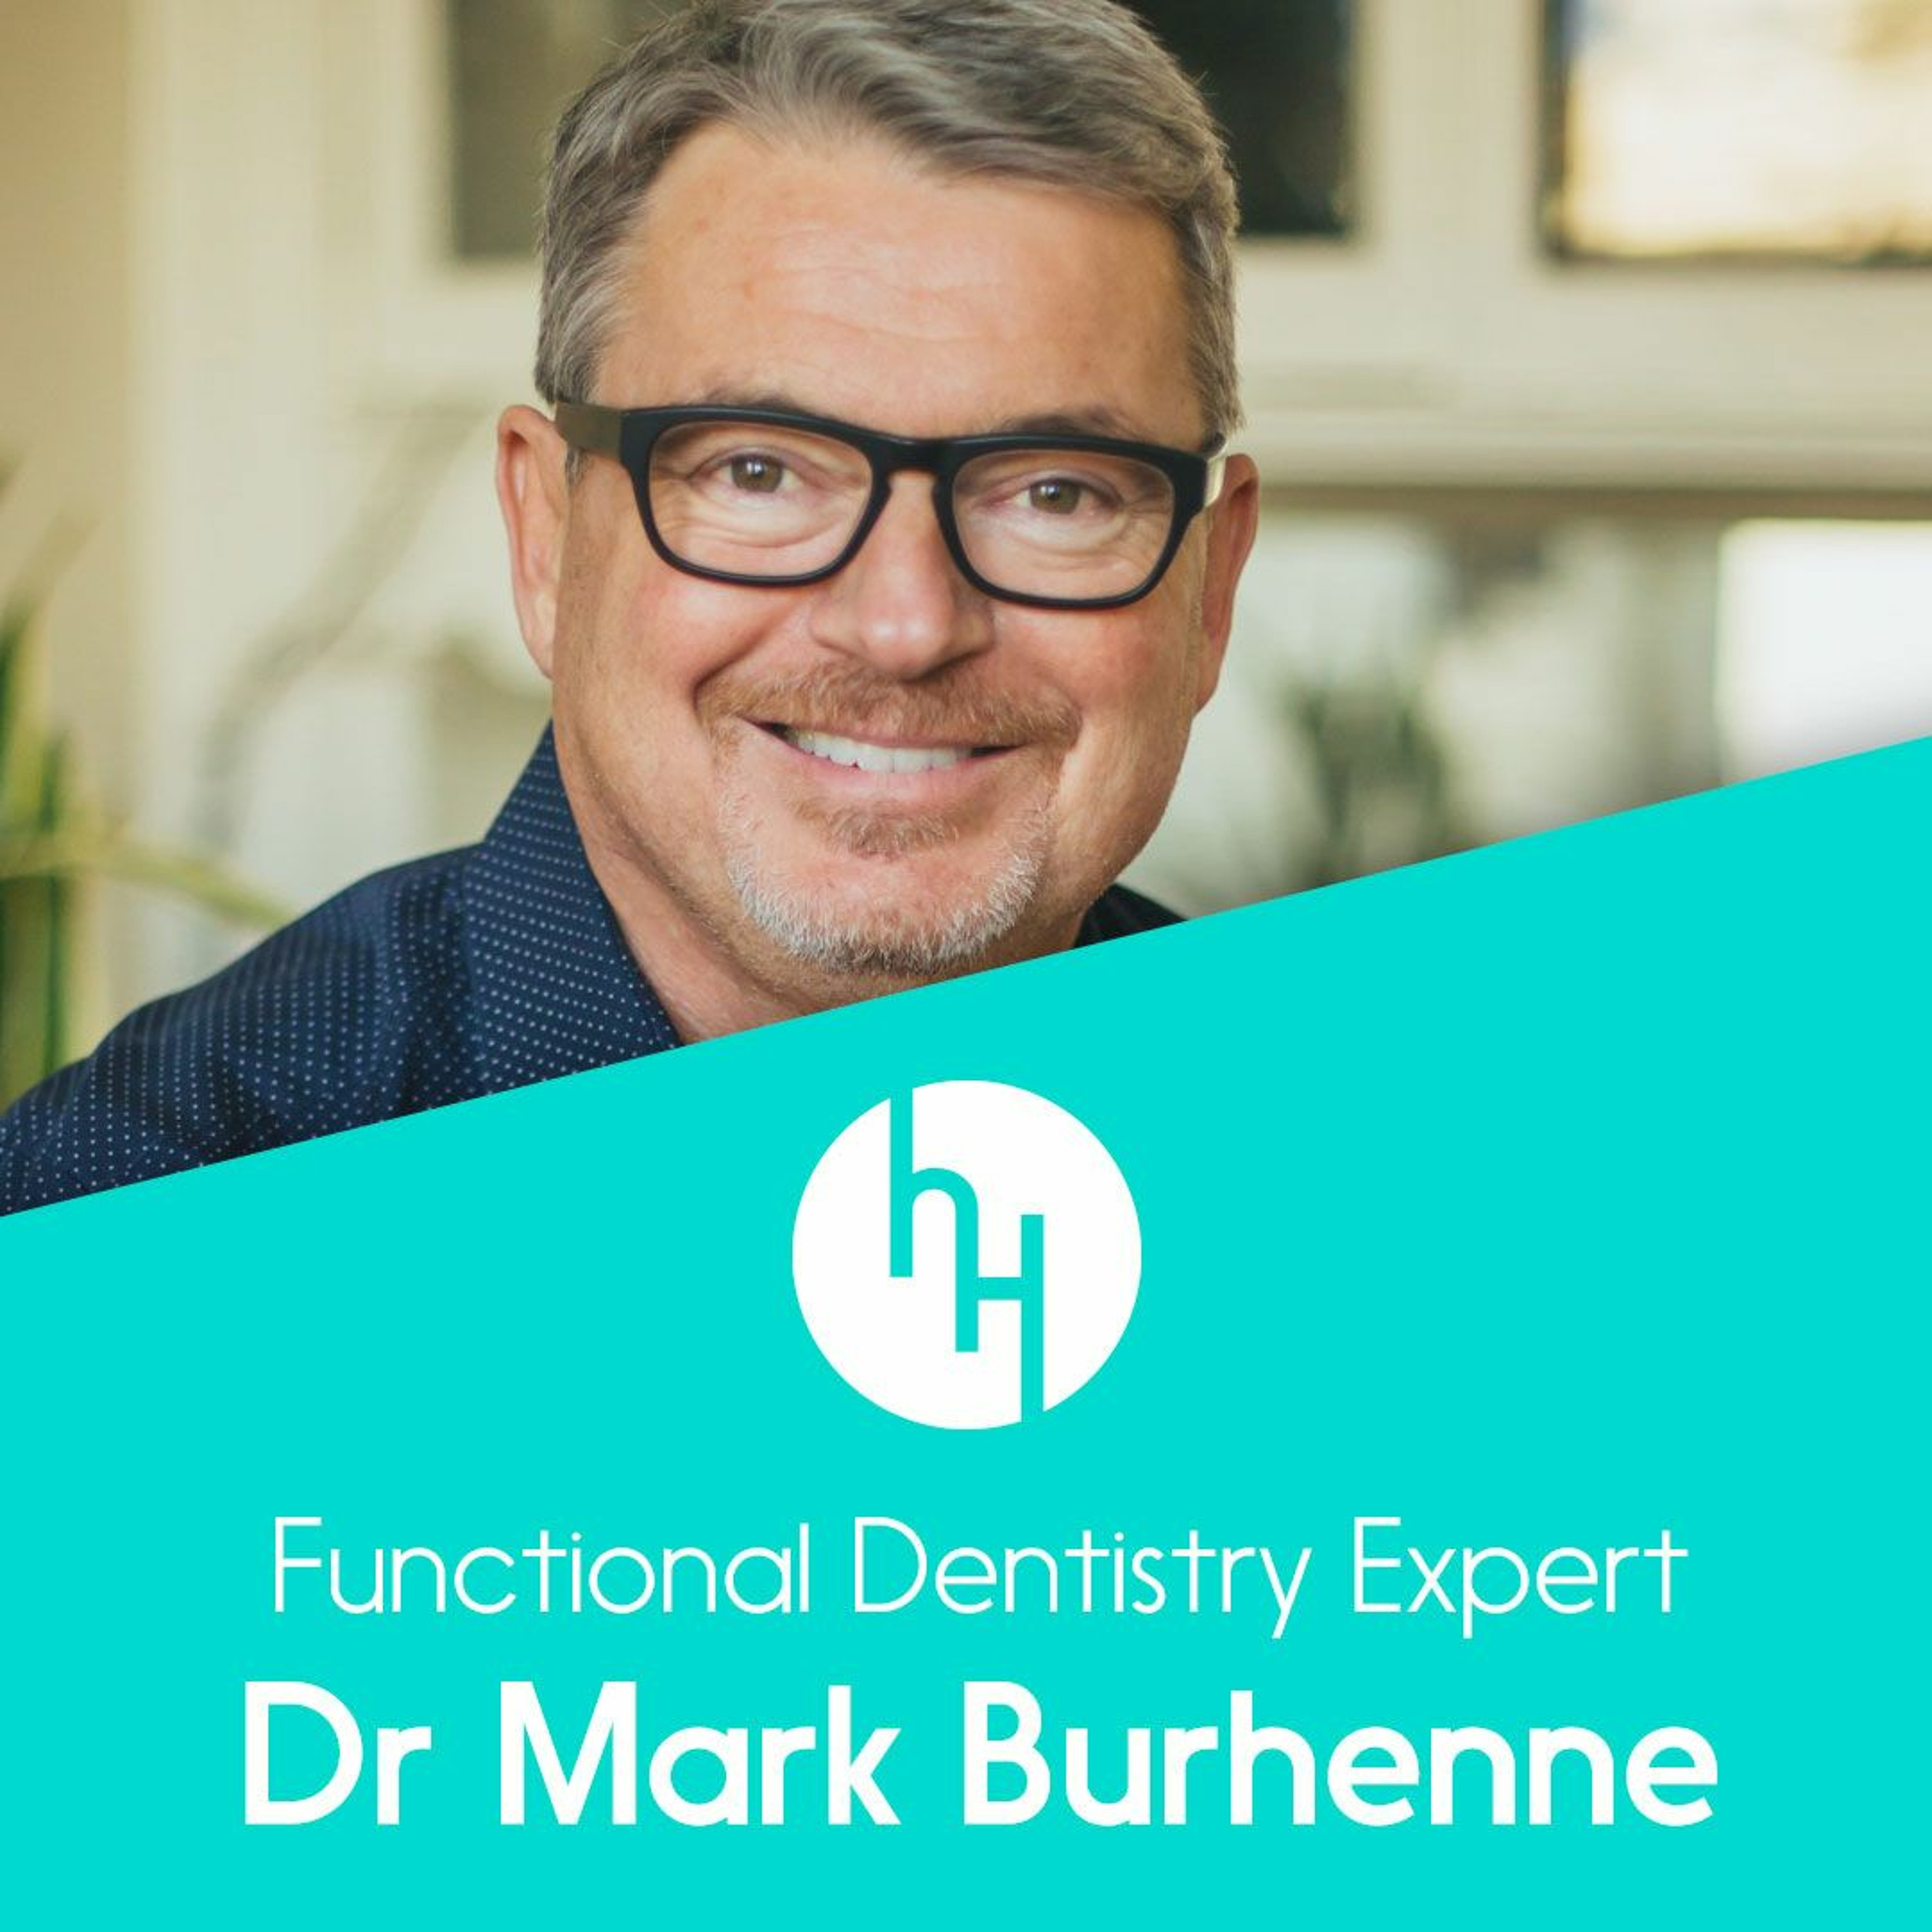 Ep 50 with functional dentistry expert Dr Mark Burhenne